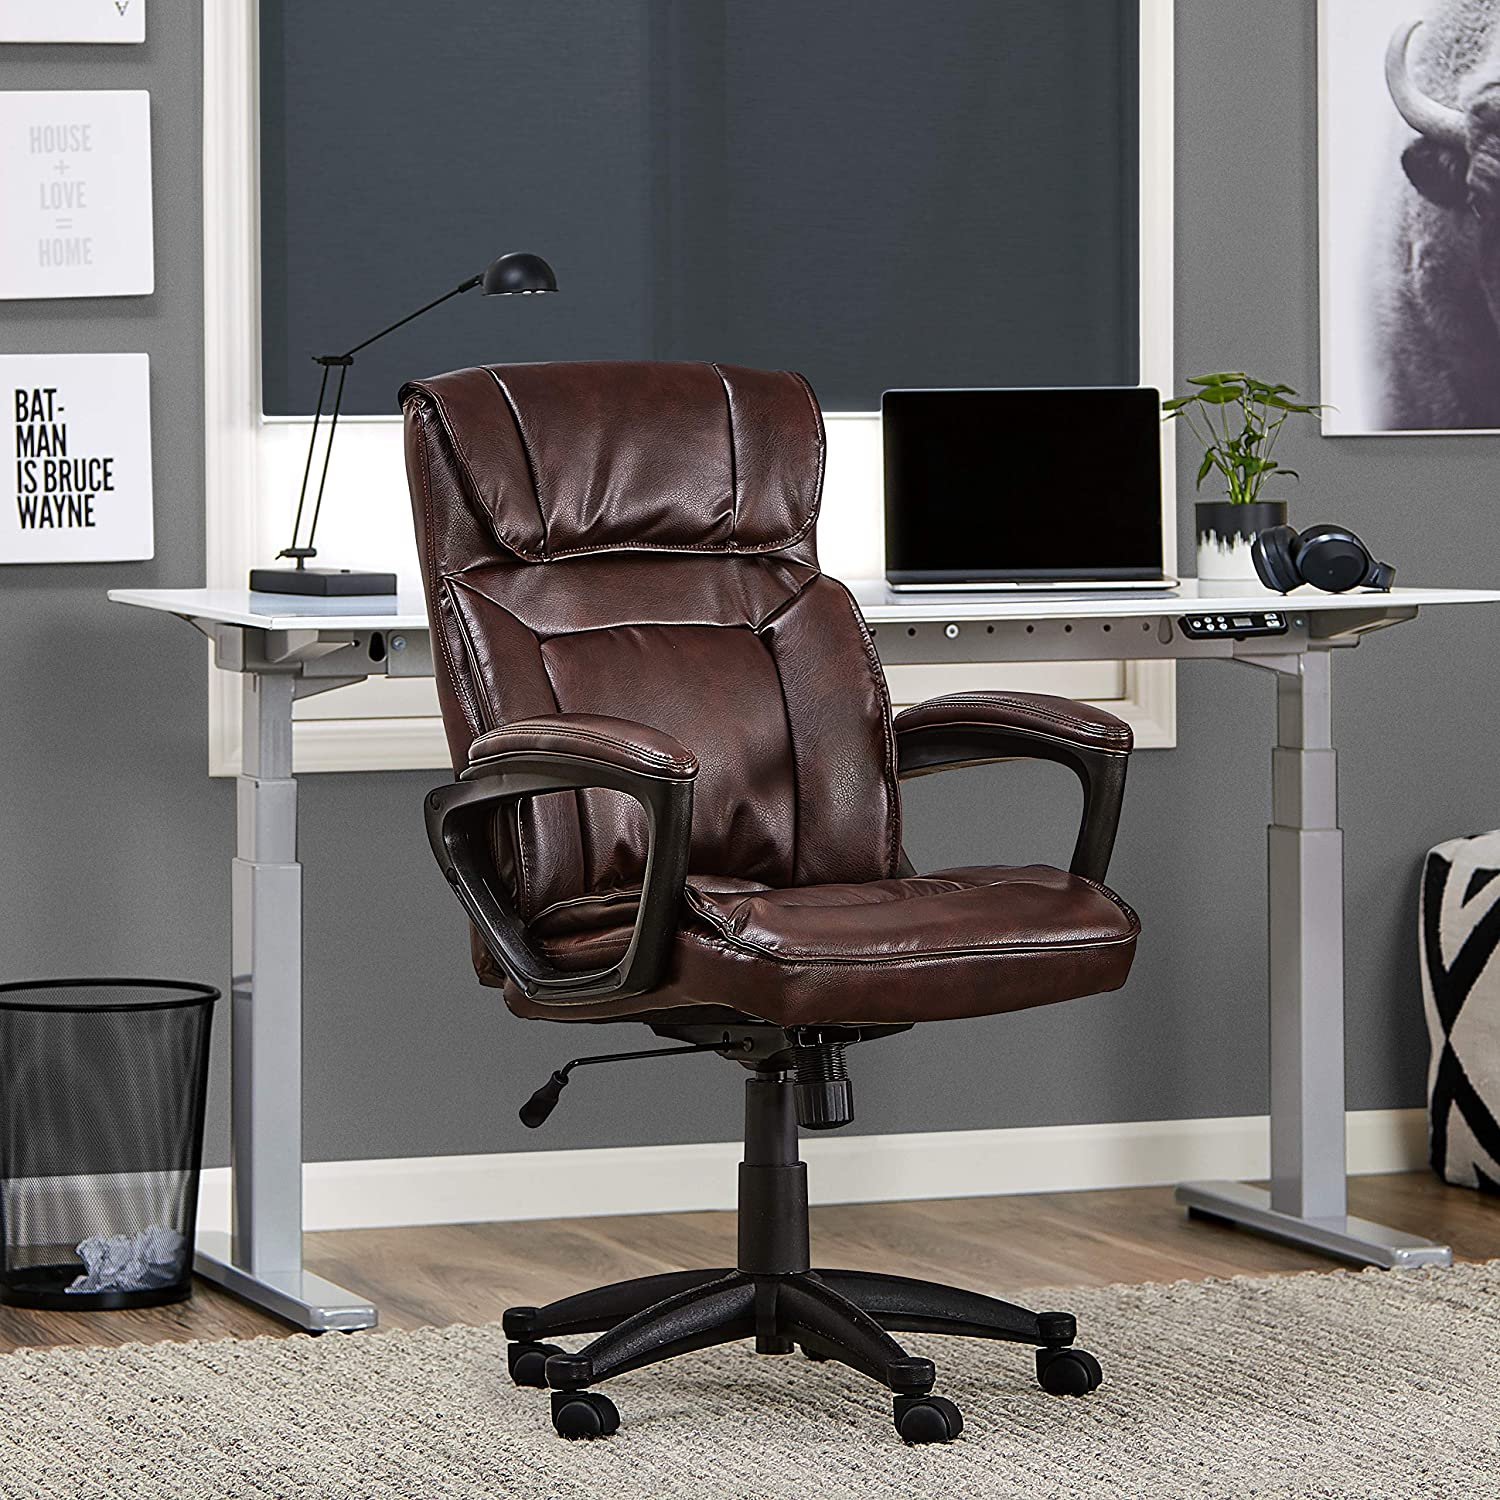 Serta Style Hannah I Office Chair, Bonded Leather, Biscuit